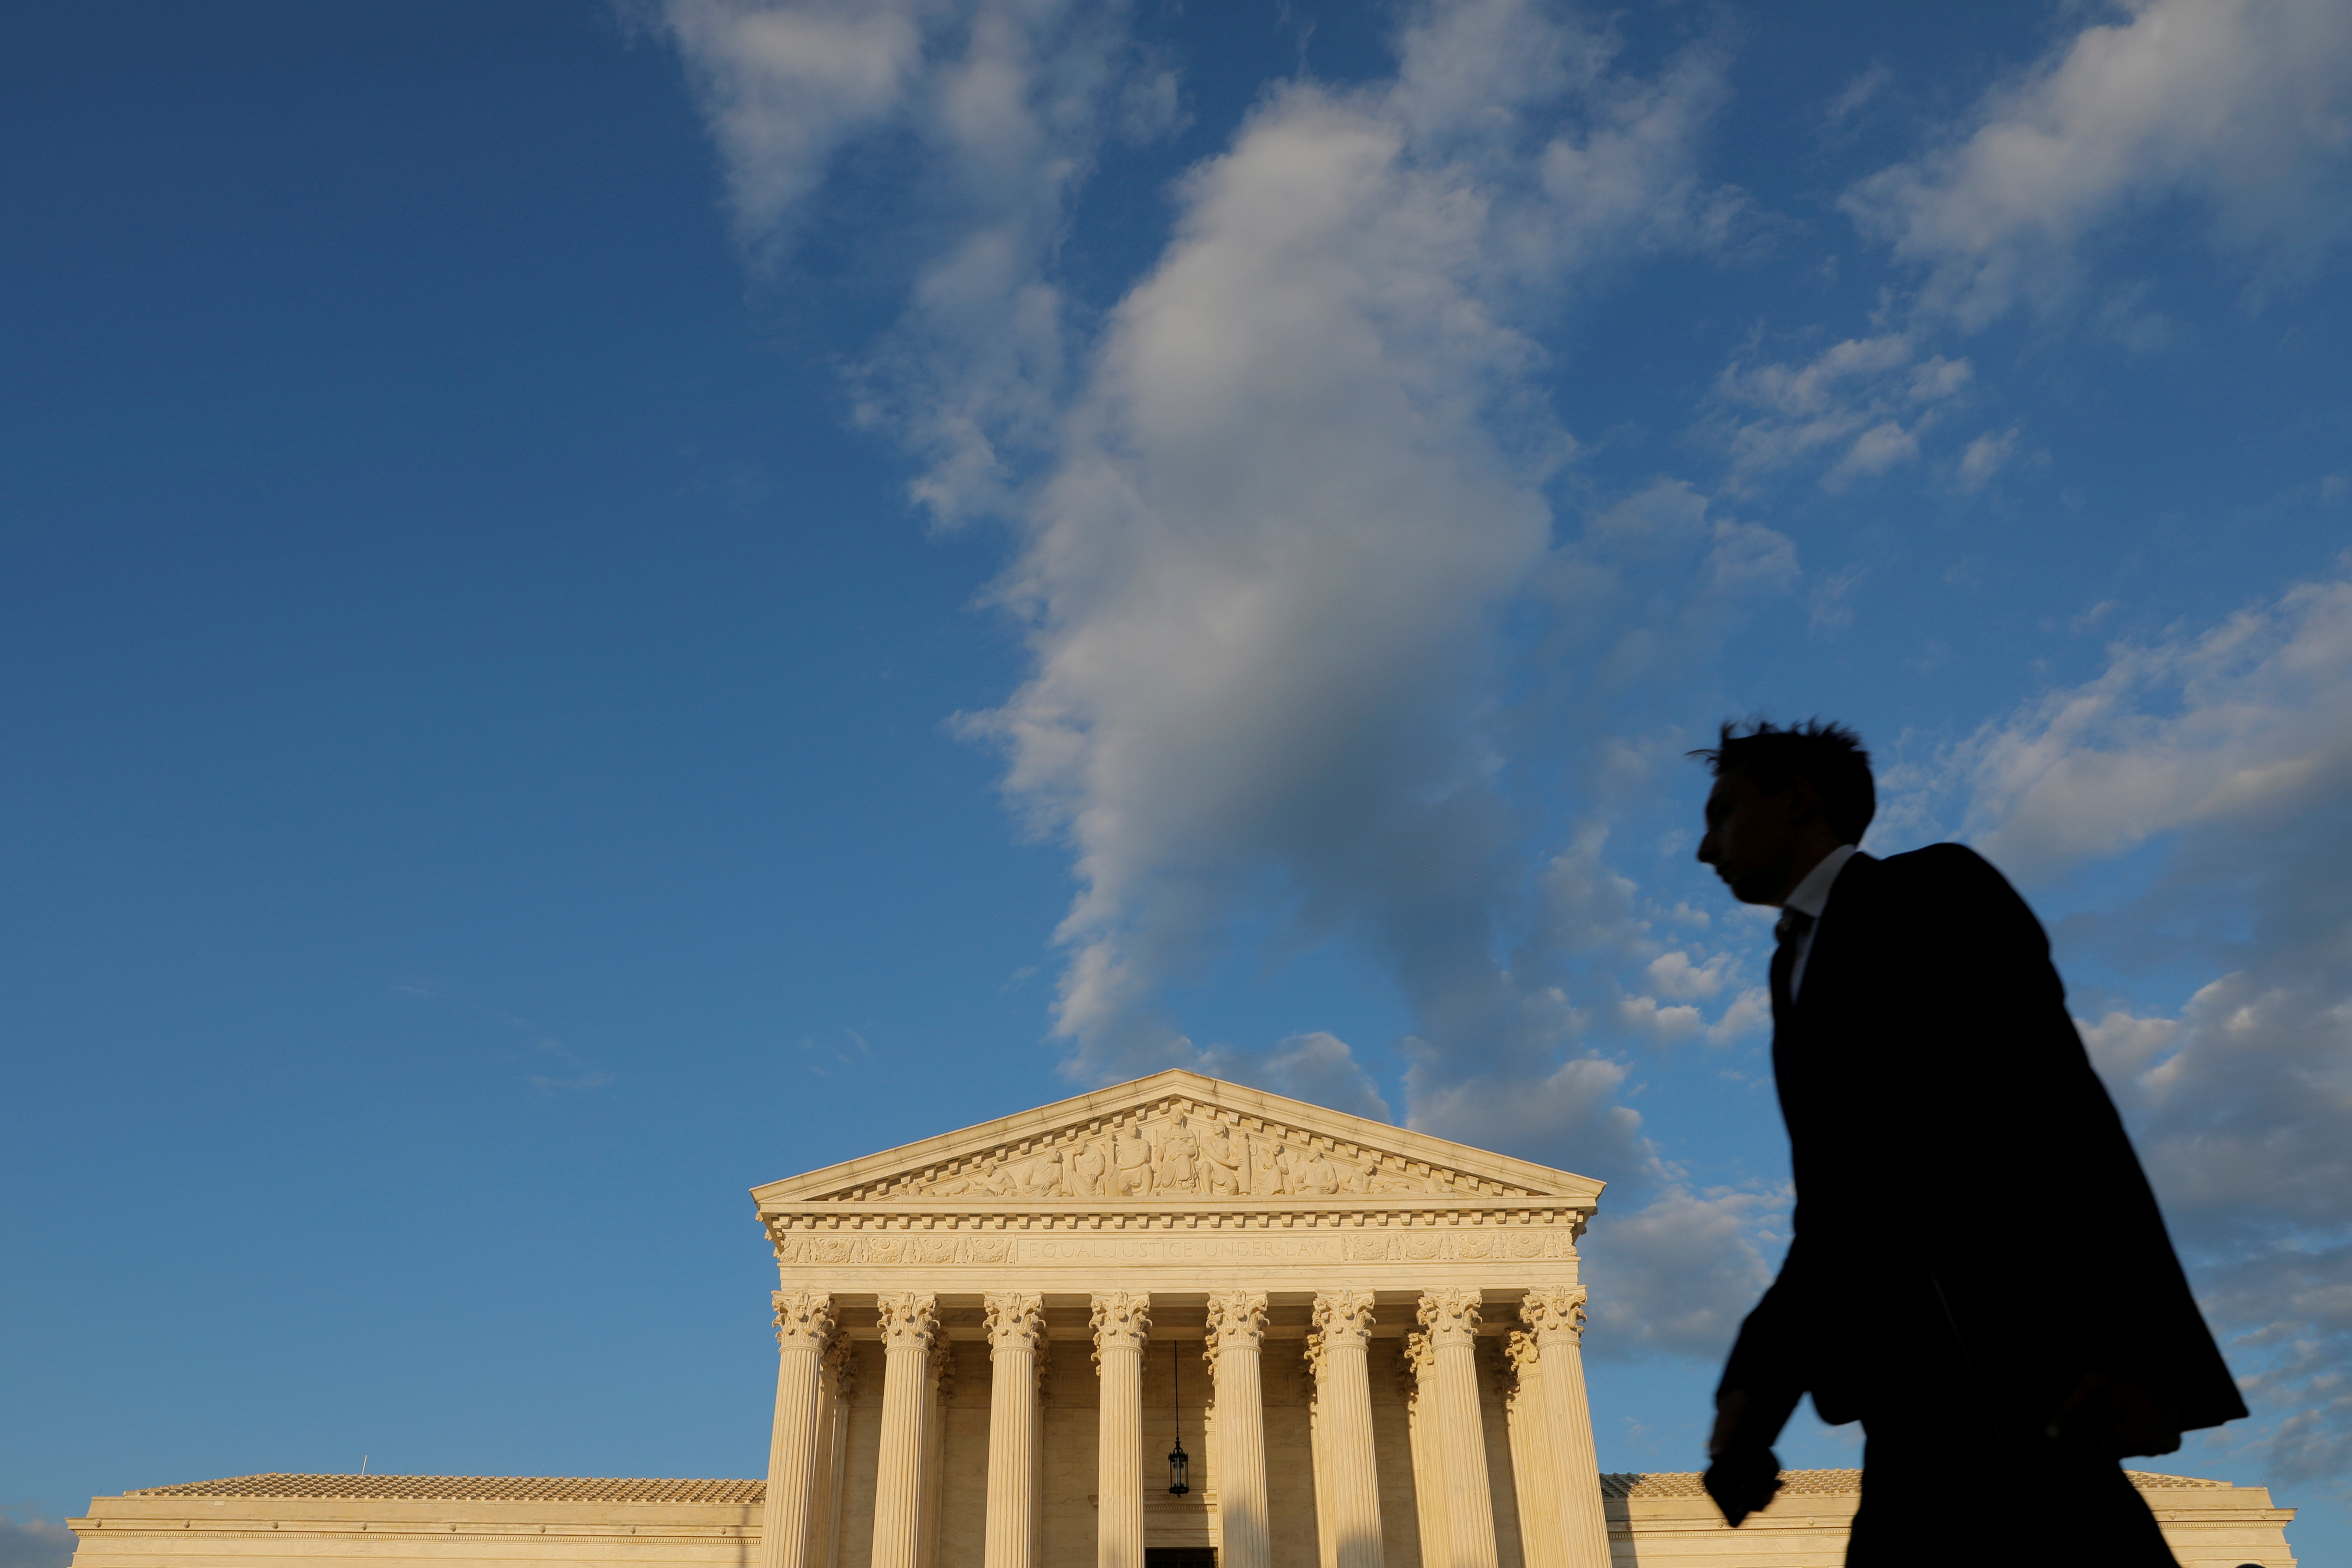 A person walks past the United States Supreme Court Building in Washington, D.C., U.S., May 13, 2021. REUTERS/Andrew Kelly/File Photo